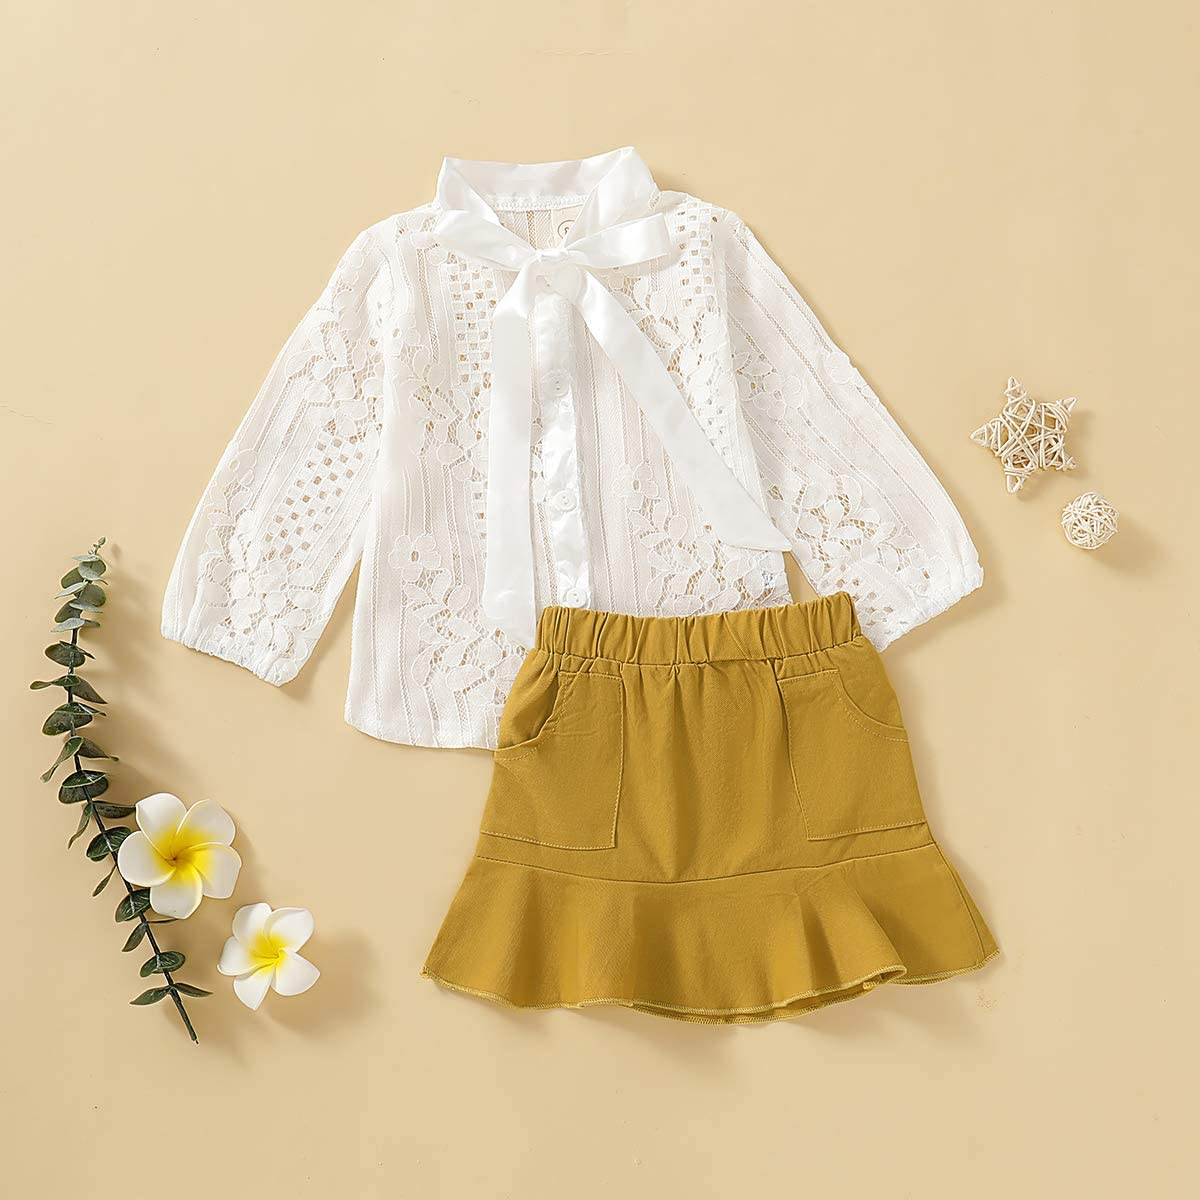 Floral Mesh Tutu Skirt Outfits Set puseky 2pcs//Set Infant Kids Girl Lace Short Sleeve Tops